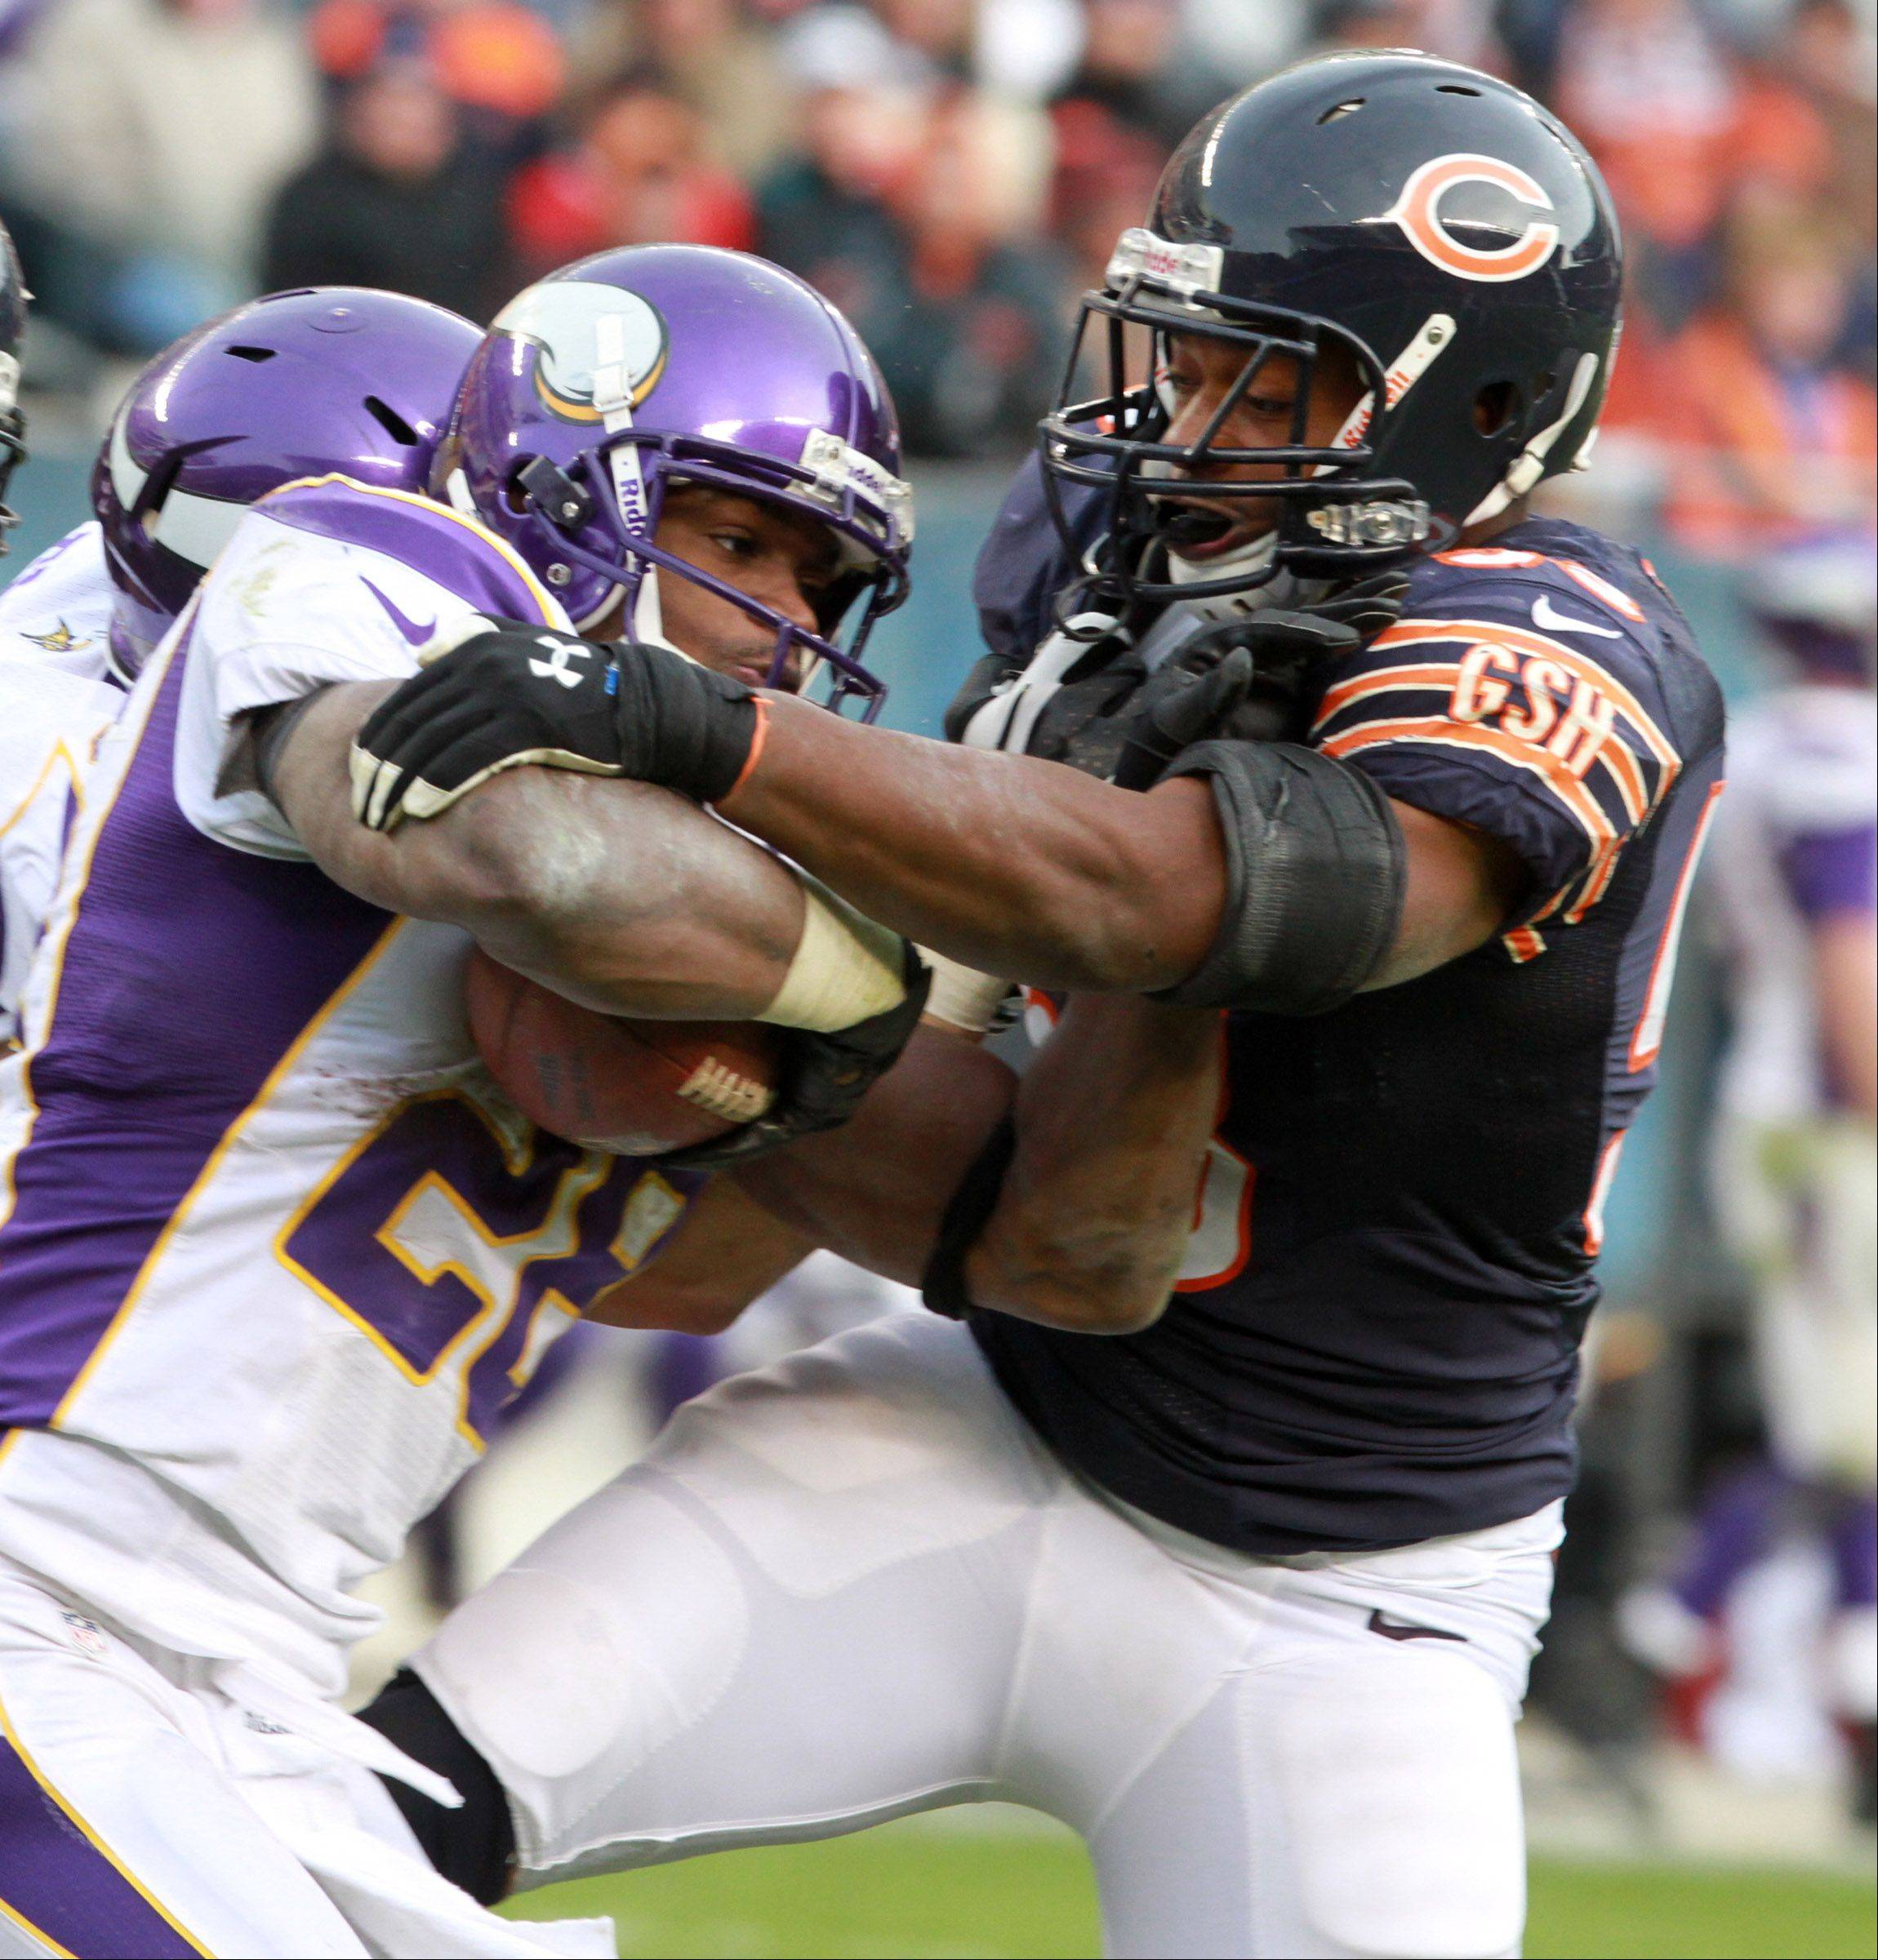 Bears linebacker Nick Roach, here battling Minnesota Vikings running back Adrian Peterson, has signed with the Oakland Raiders.